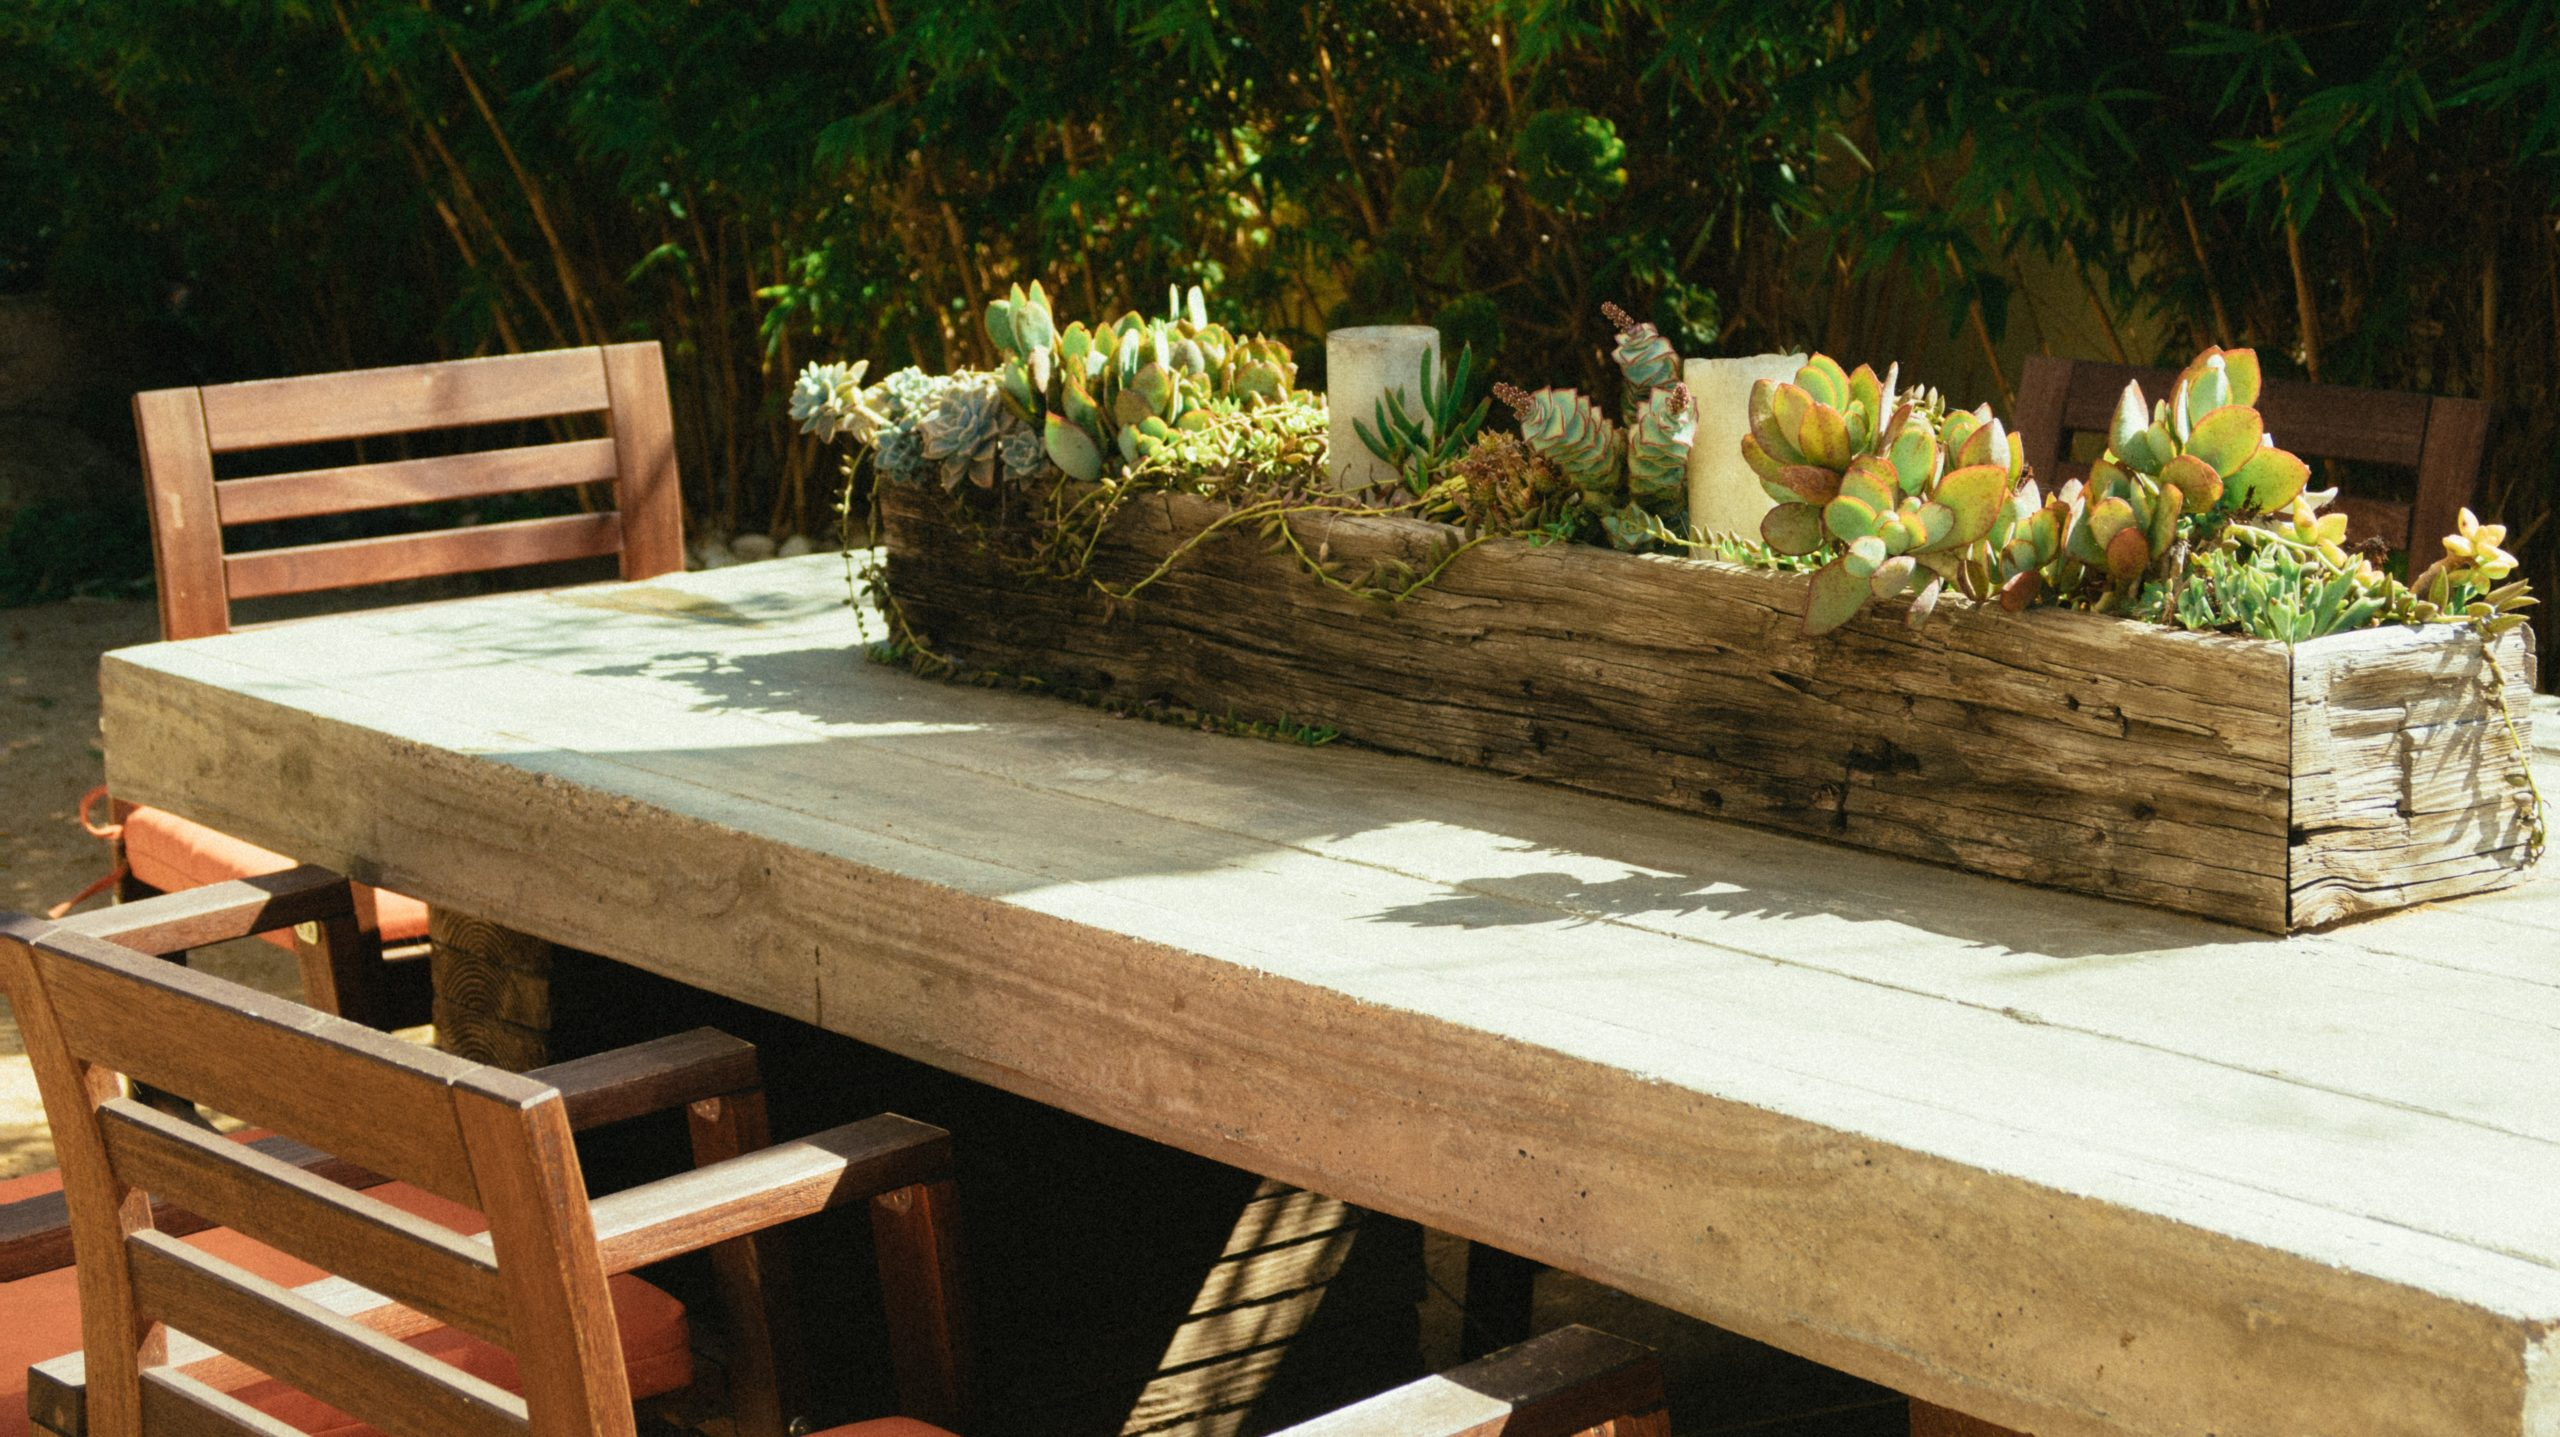 wooden plant box on outdoor table